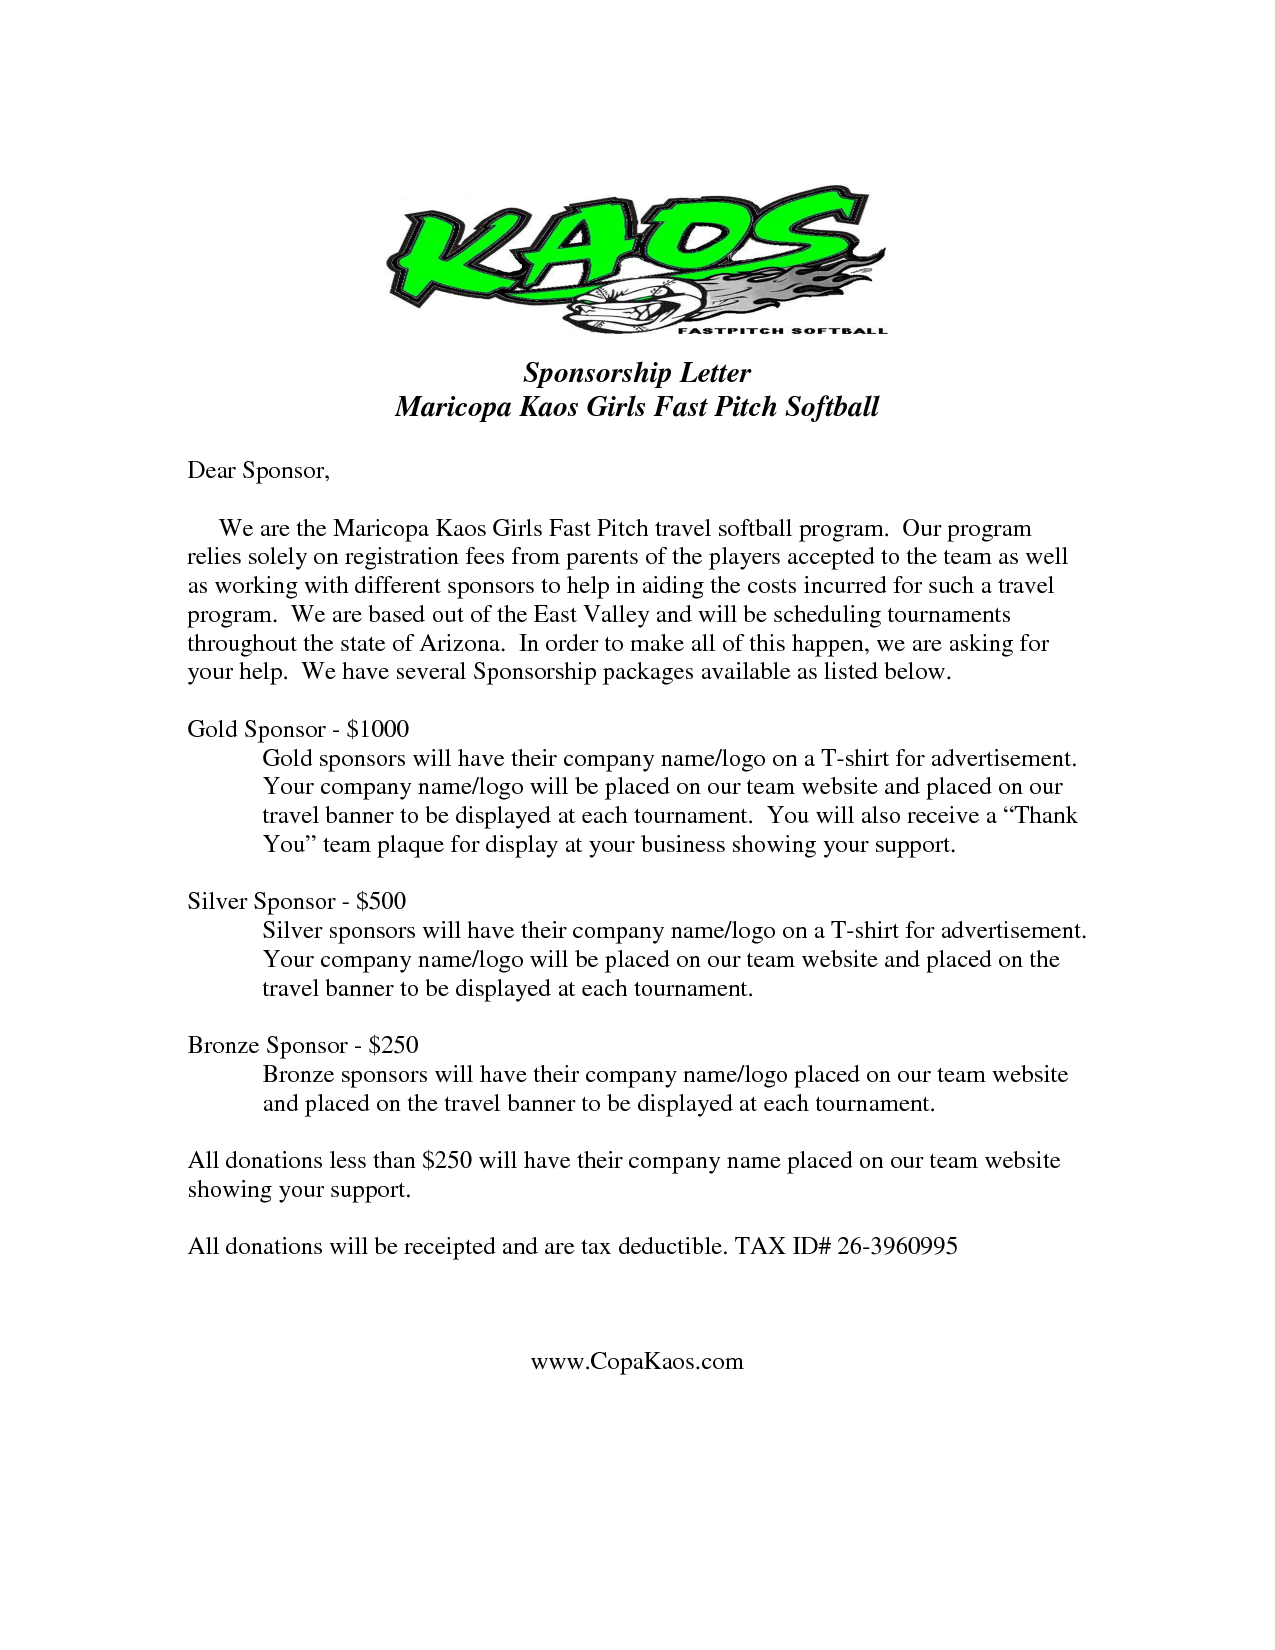 golf tournament sponsorship letter template example-Image result for sample sponsor request letter donation 15-h